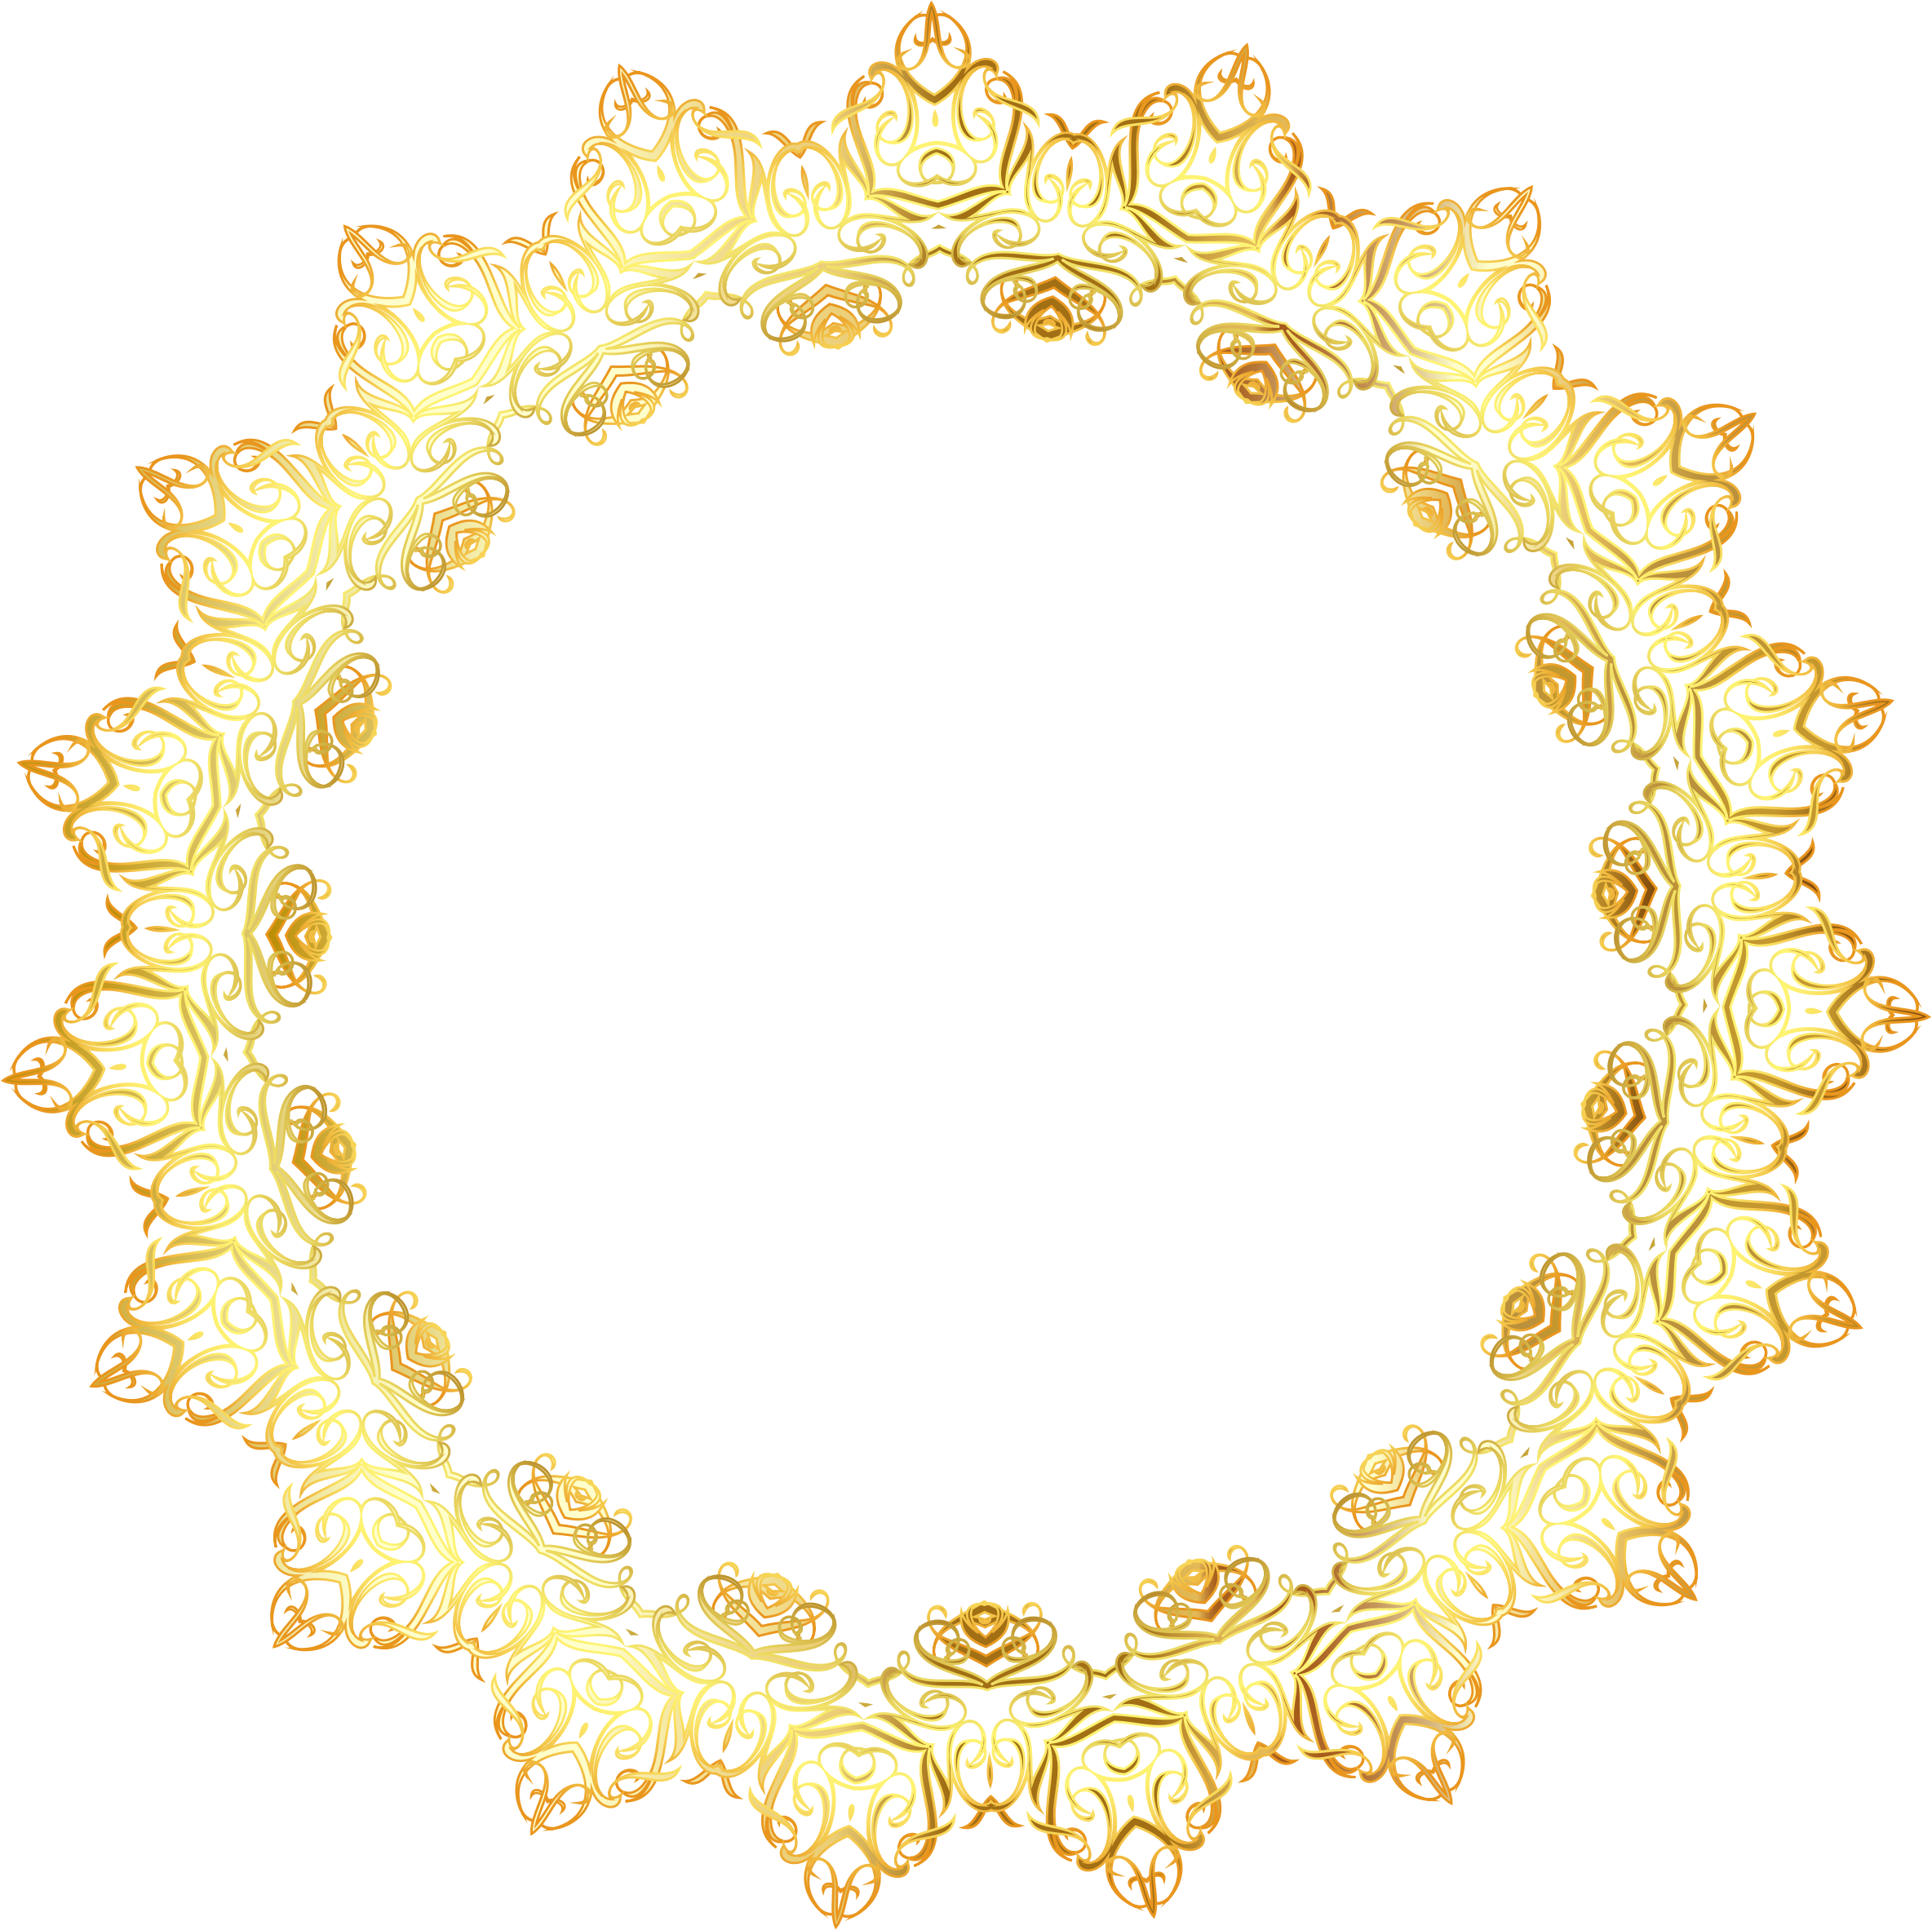 Yellow Oval Office Clipart Gold Abstract Elegant Frame No Background